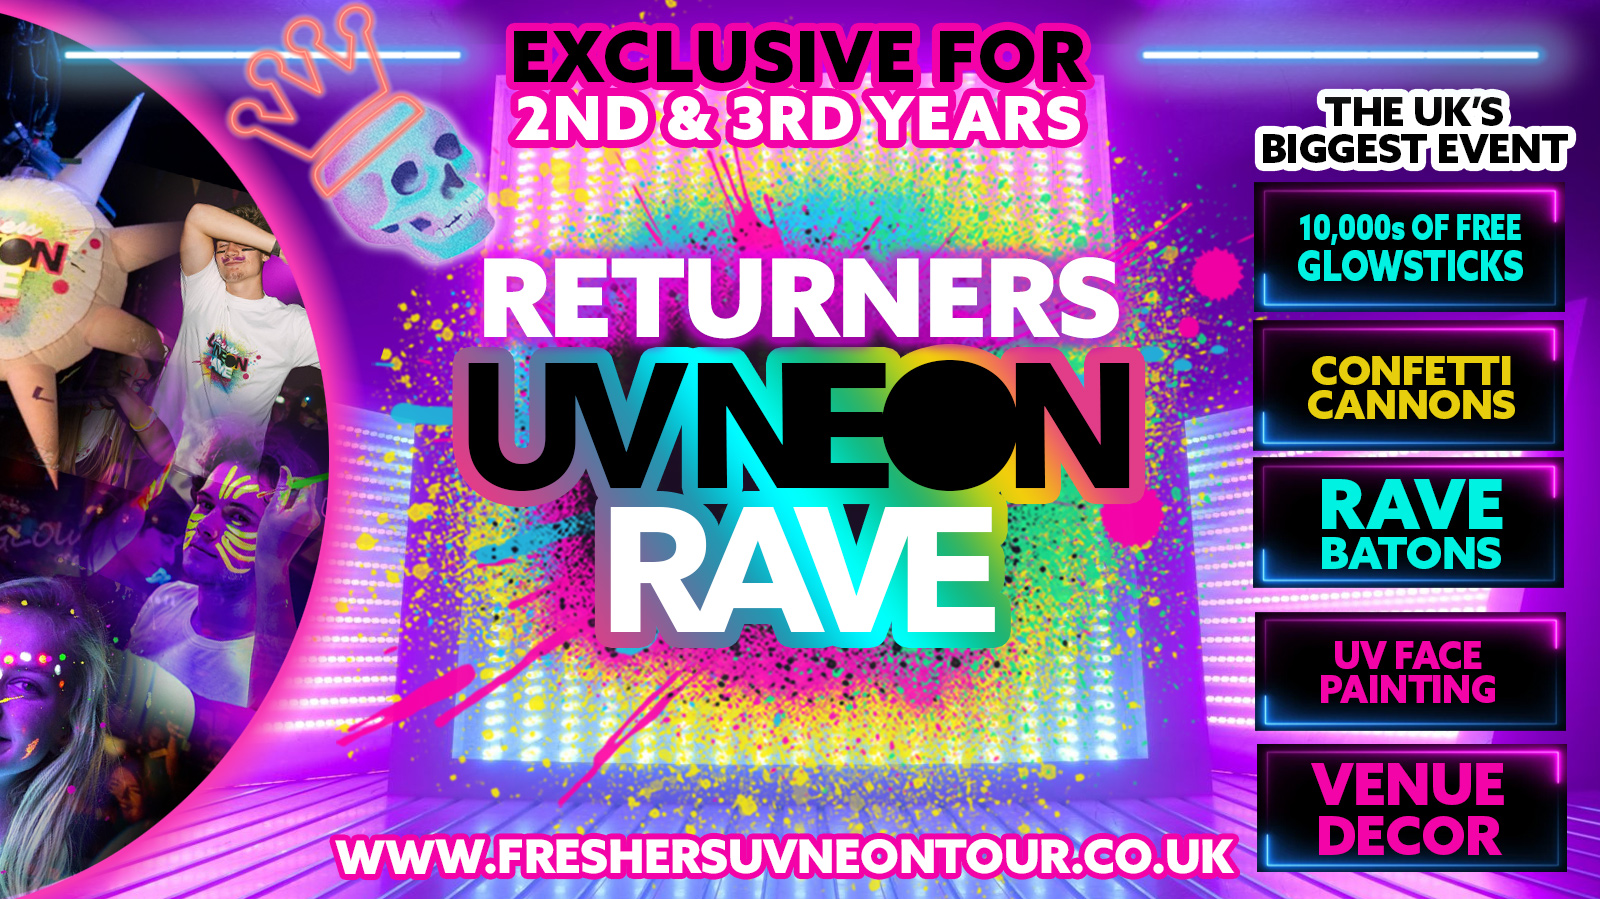 Nottingham Returners UV Neon Rave   Exclusive for 2nd & 3rd Years